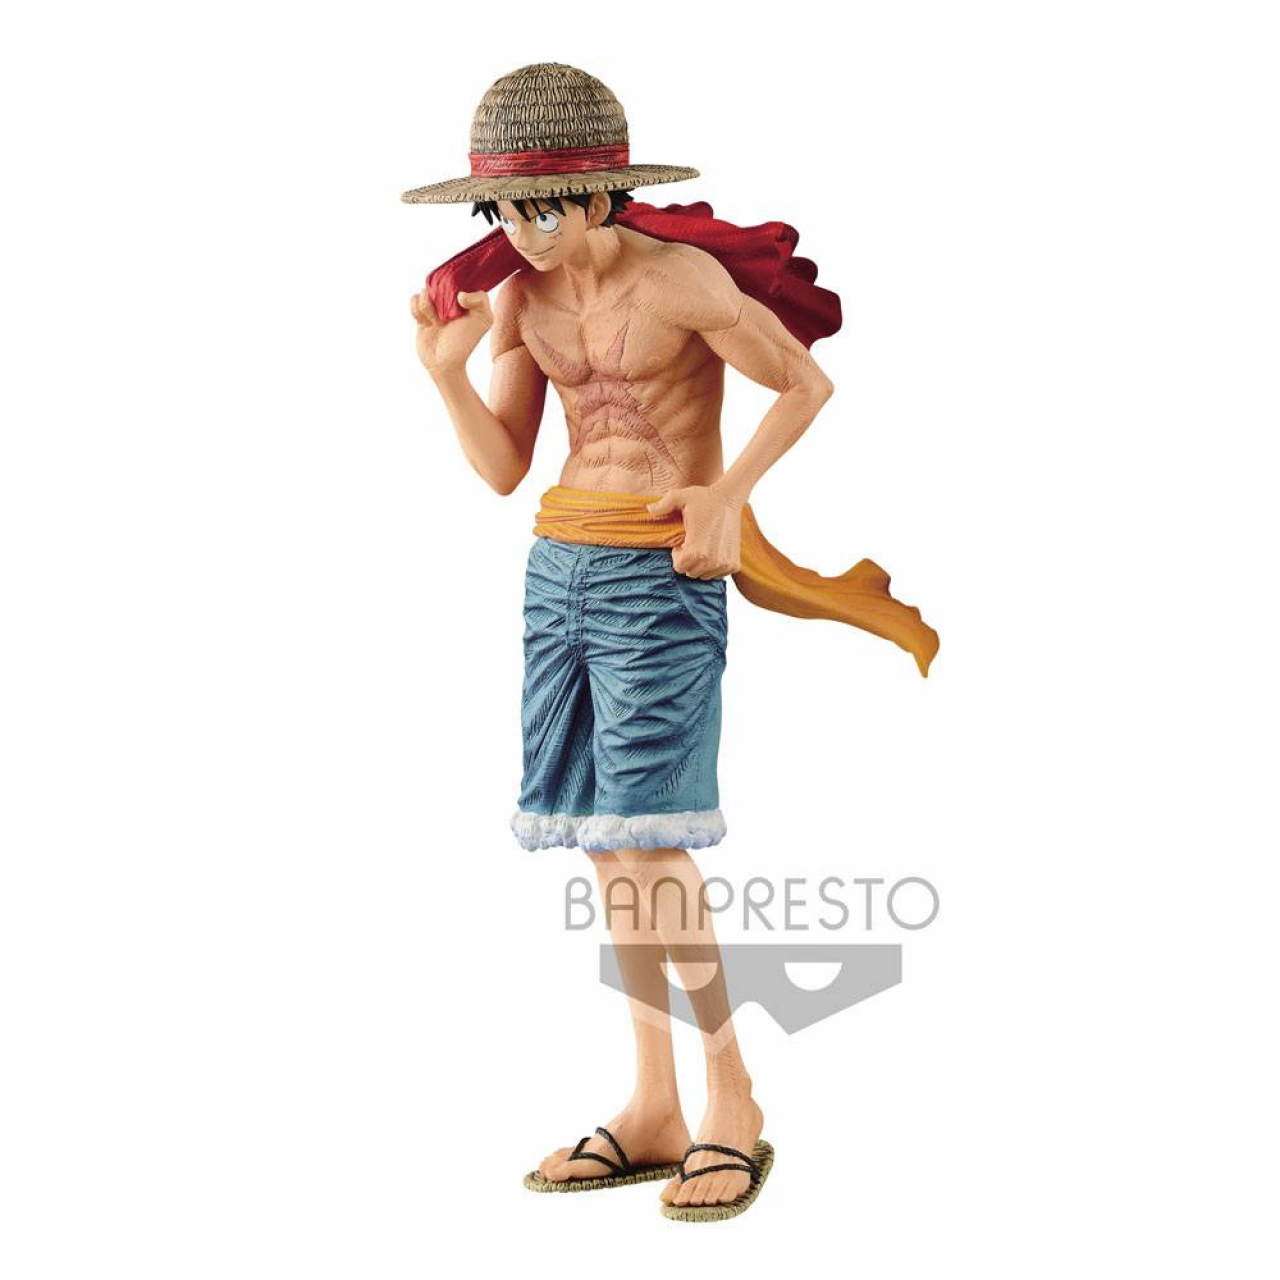 One Piece magazine PVC Statue Monkey D. Luffy Cover of 20th Anniversary One Piece Magazine 22 cm